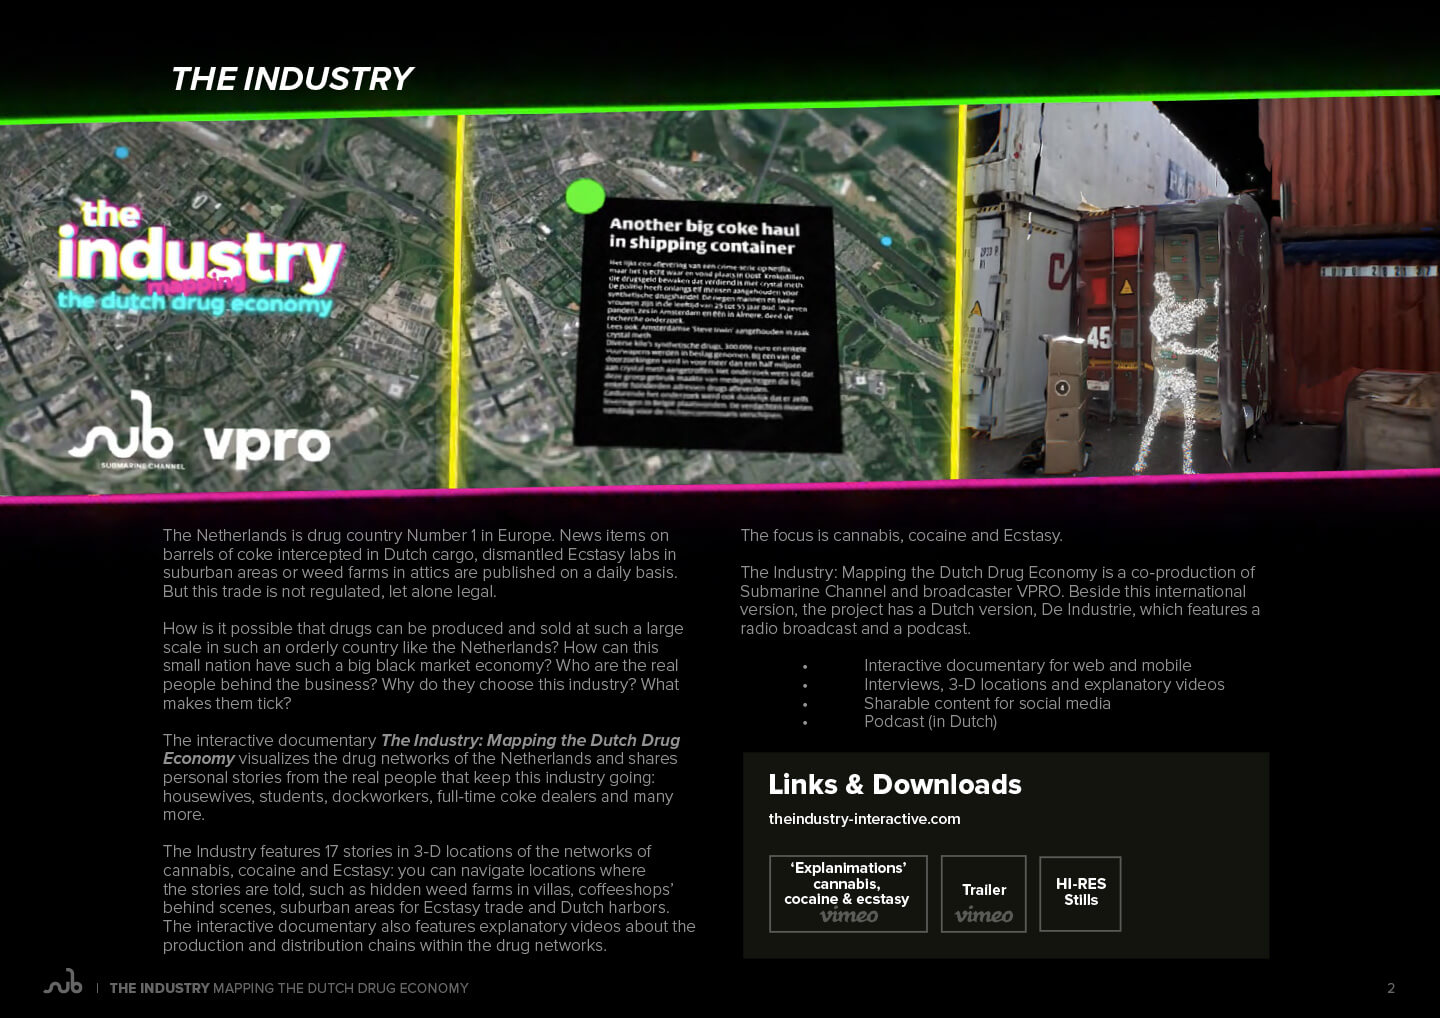 The Industry presskit